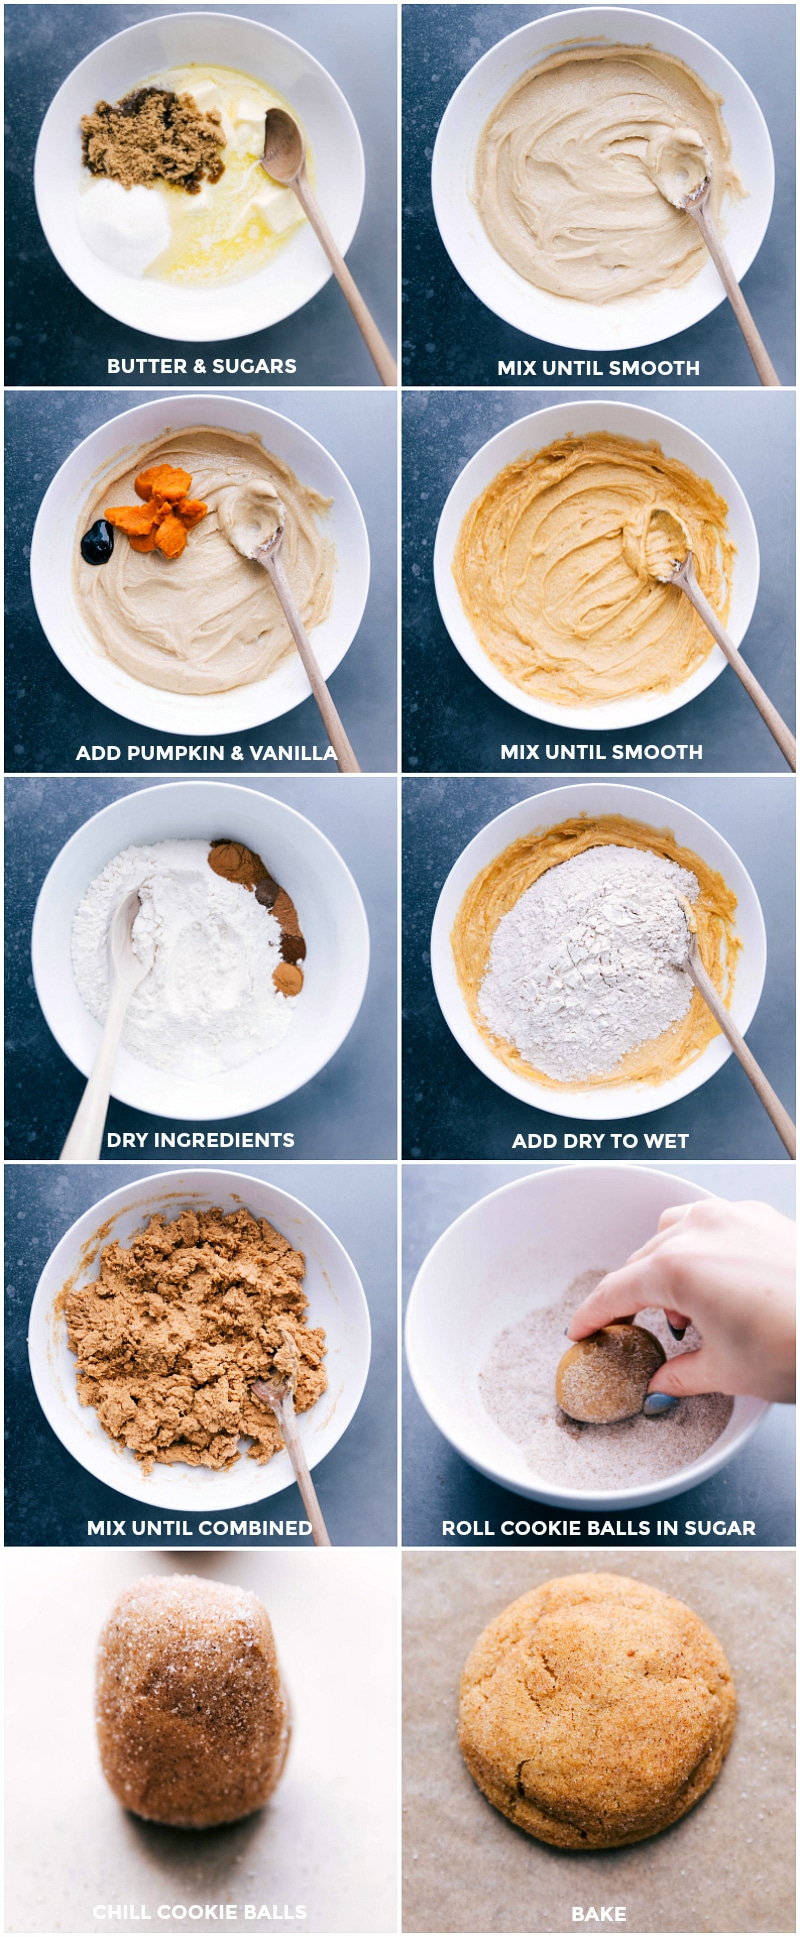 Process shots-- images of the butters and sugars being mixed together, adding pumpkin and vanilla, mixing together the dry ingredients, and combing it with the wet ingredients. The cookies being rolled into balls and rolled in the sugar, and then being baked